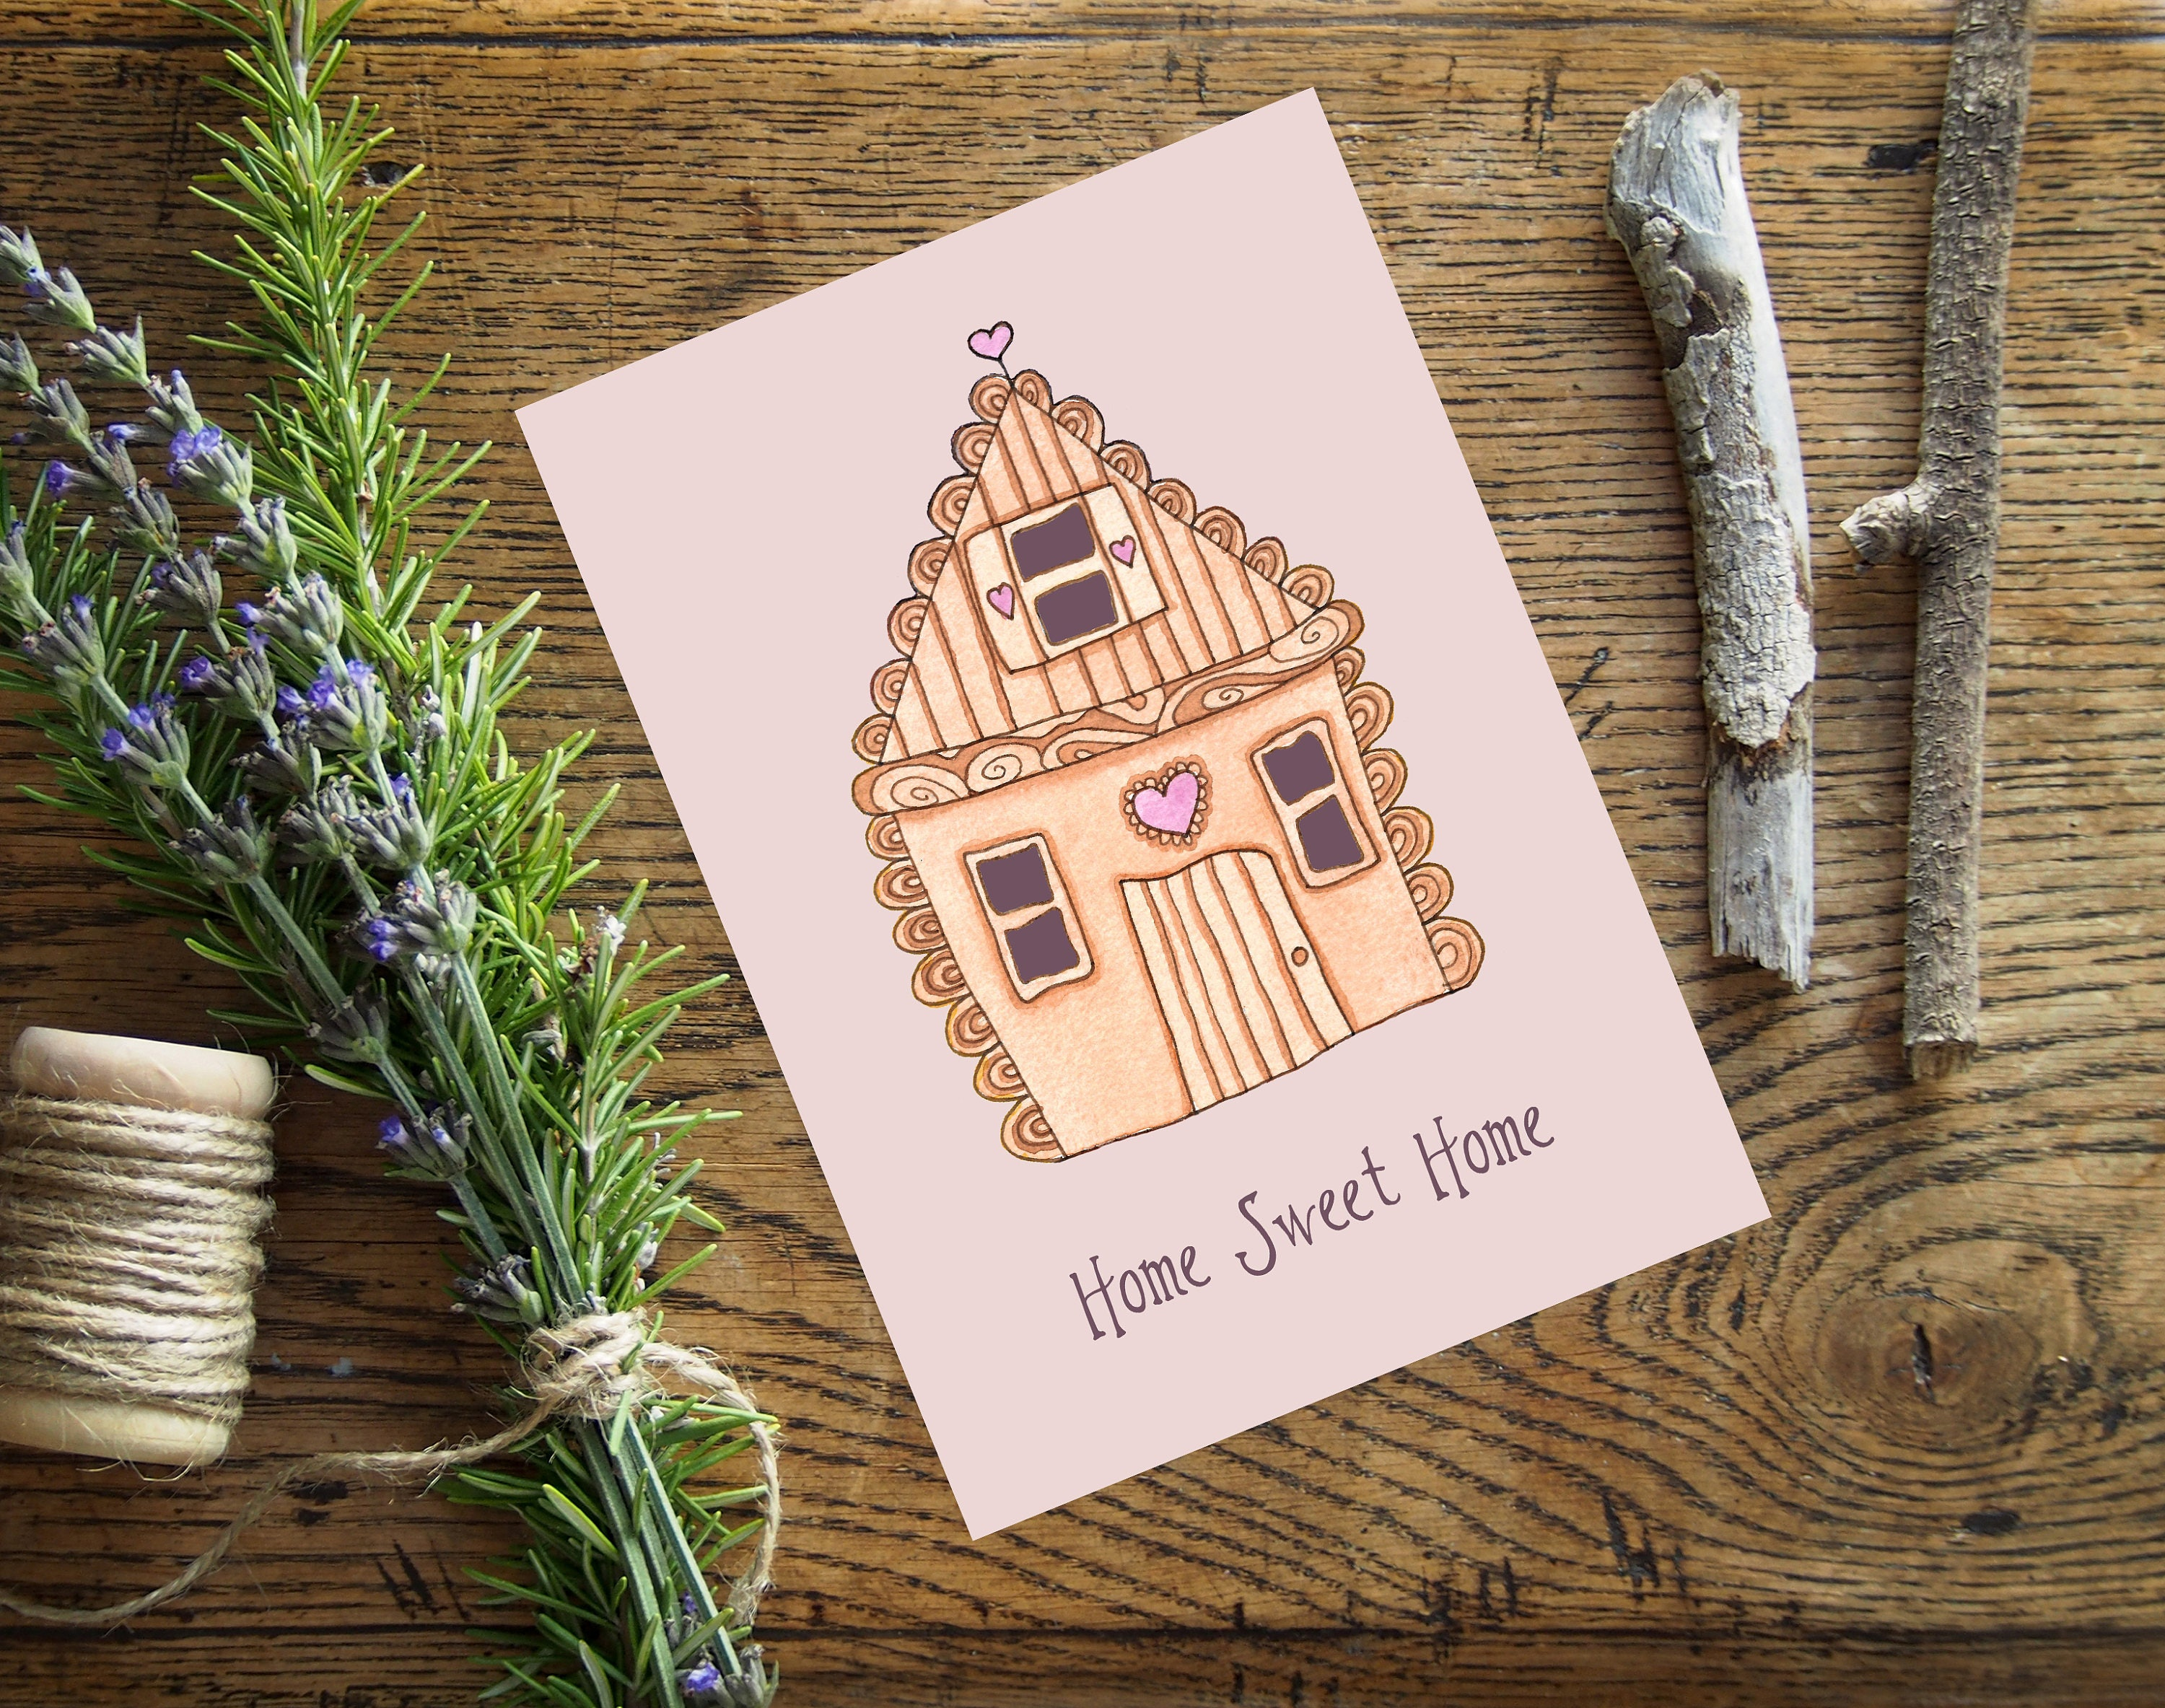 Home sweet home greetings card envelope sweet gingerbread home sweet home greetings card envelope sweet gingerbread house new home moving card kristyandbryce Image collections